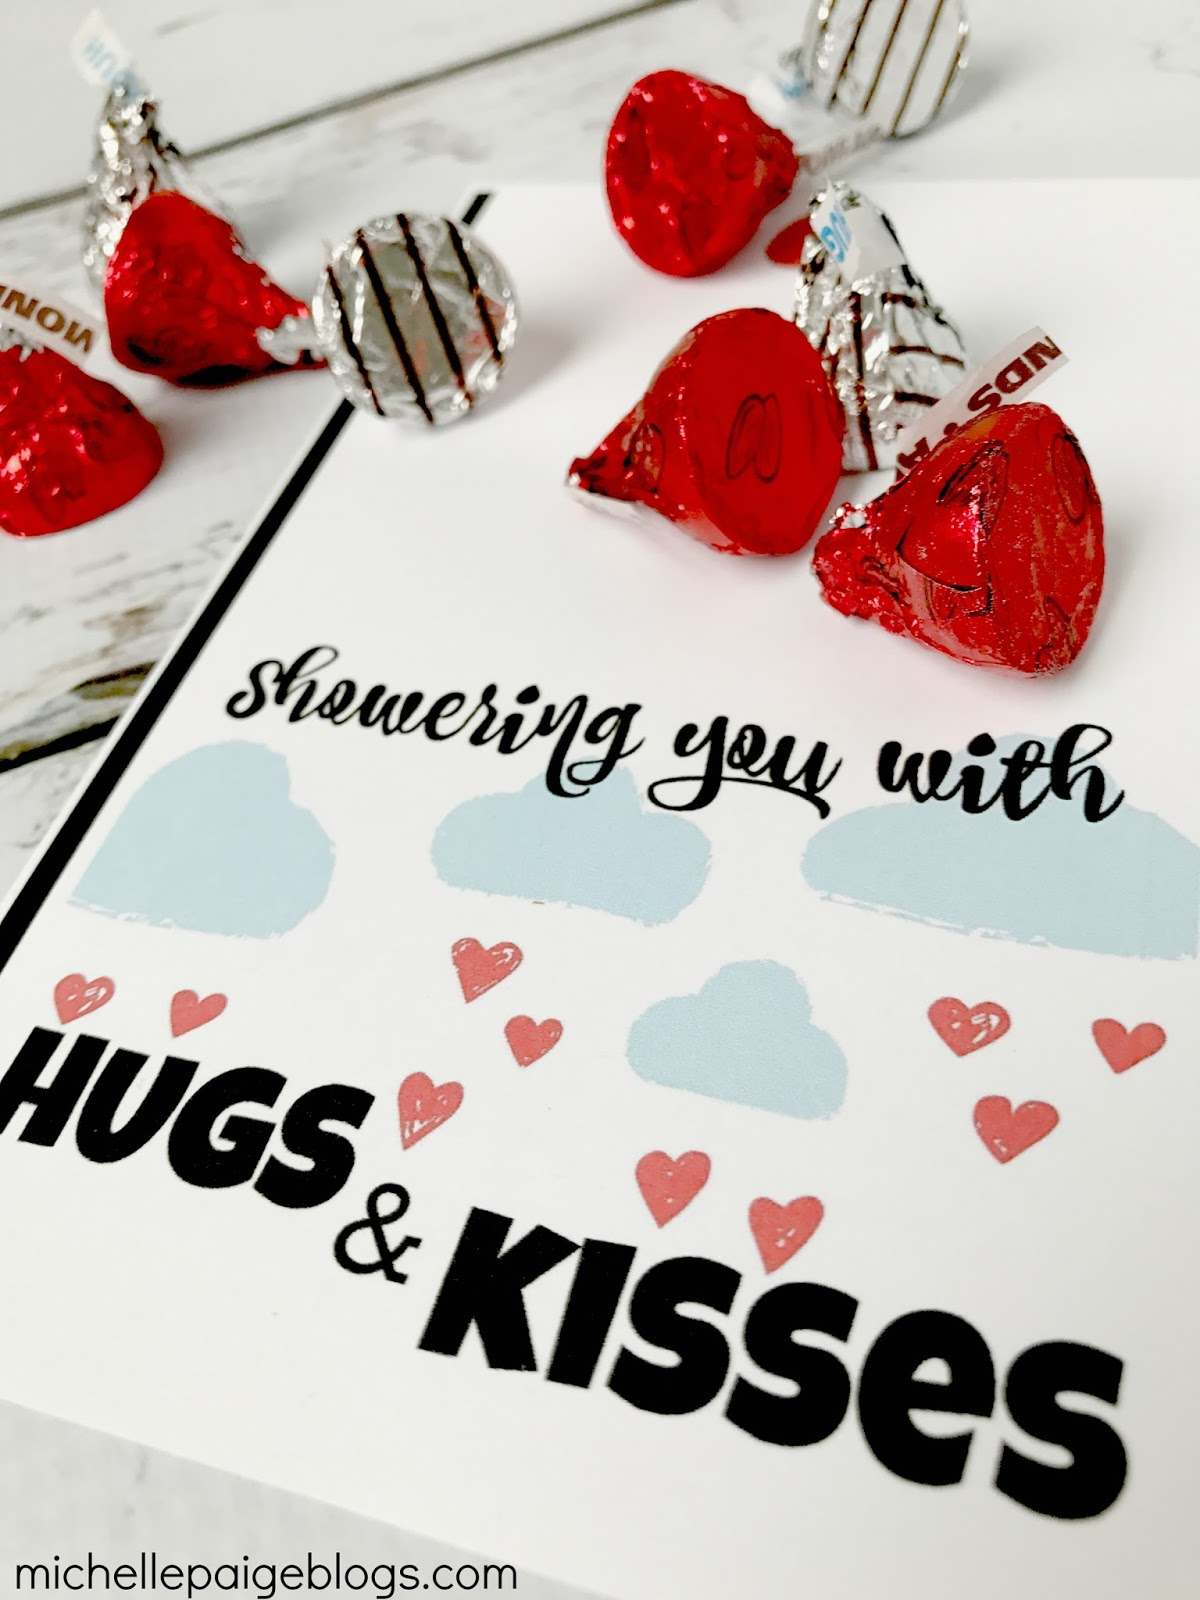 Michelle Paige Blogs Showering You With Kisses Valentine